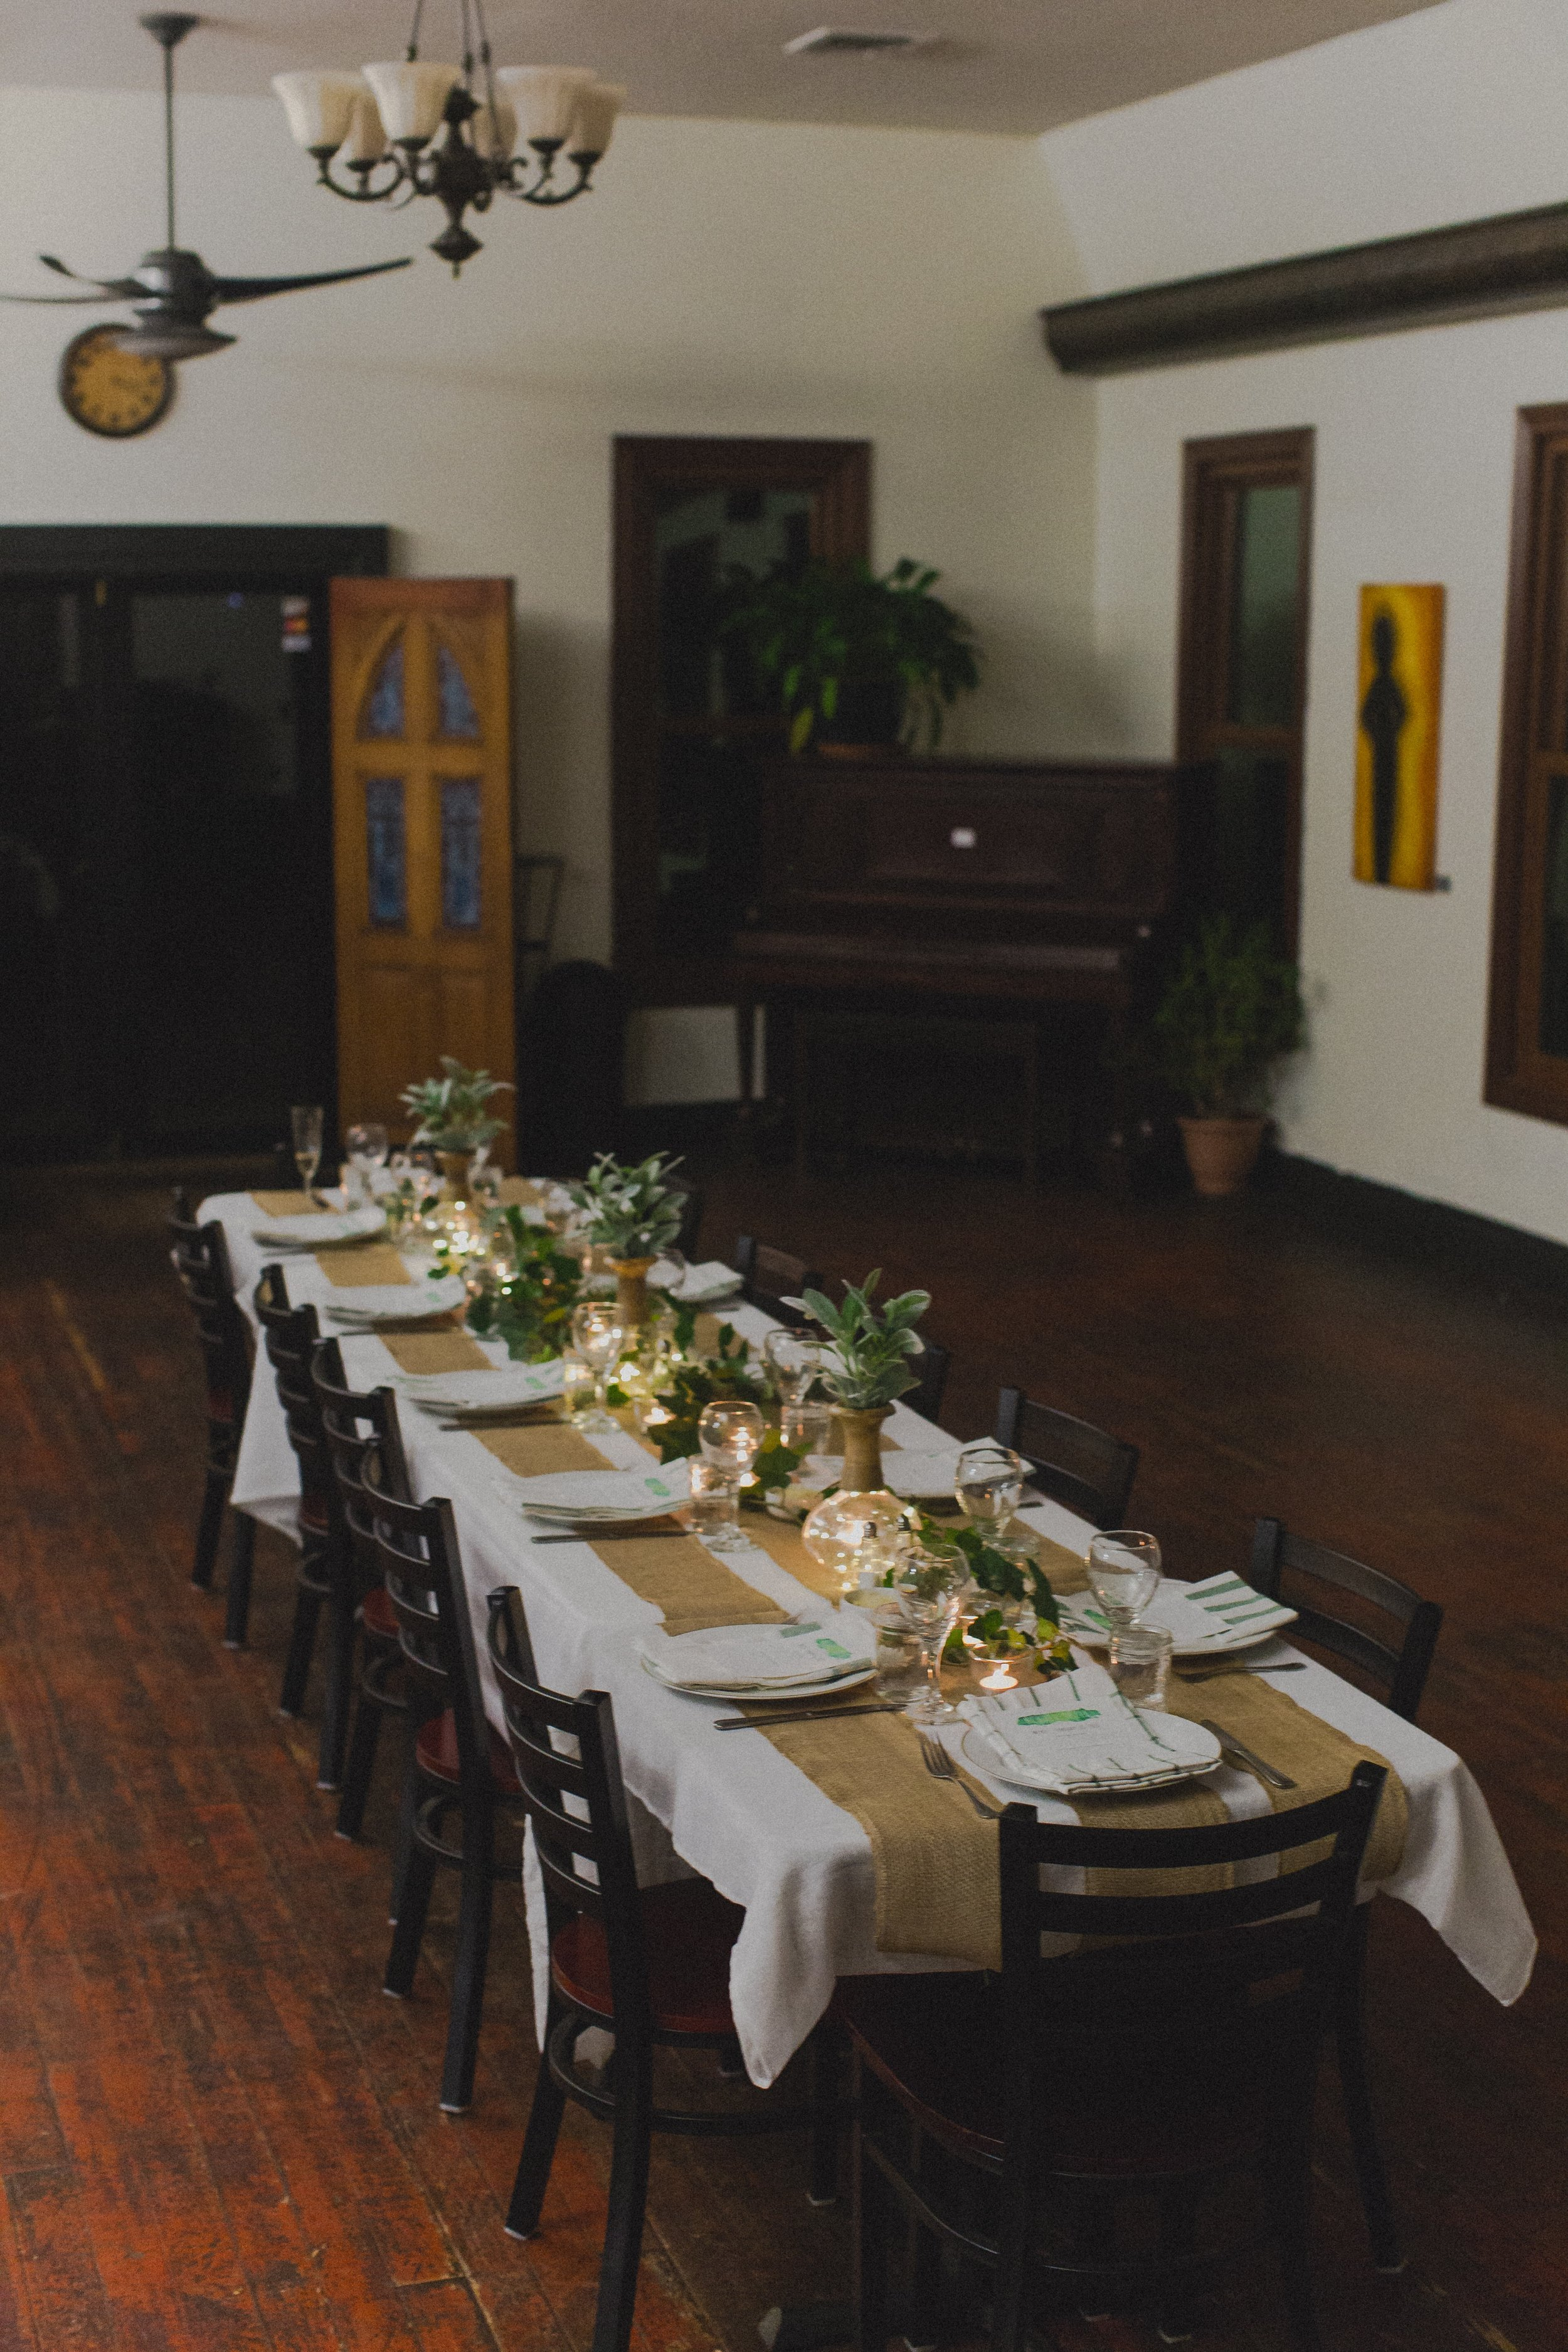 rooted event company co rooted table community banquet table the dalles oregon catering dinner supper club pop up restaurant wedding events place setting rootedtable hood river dallesport columbia river gorge food foodie eats eat the riv cafe farm to table event planner event coordinator